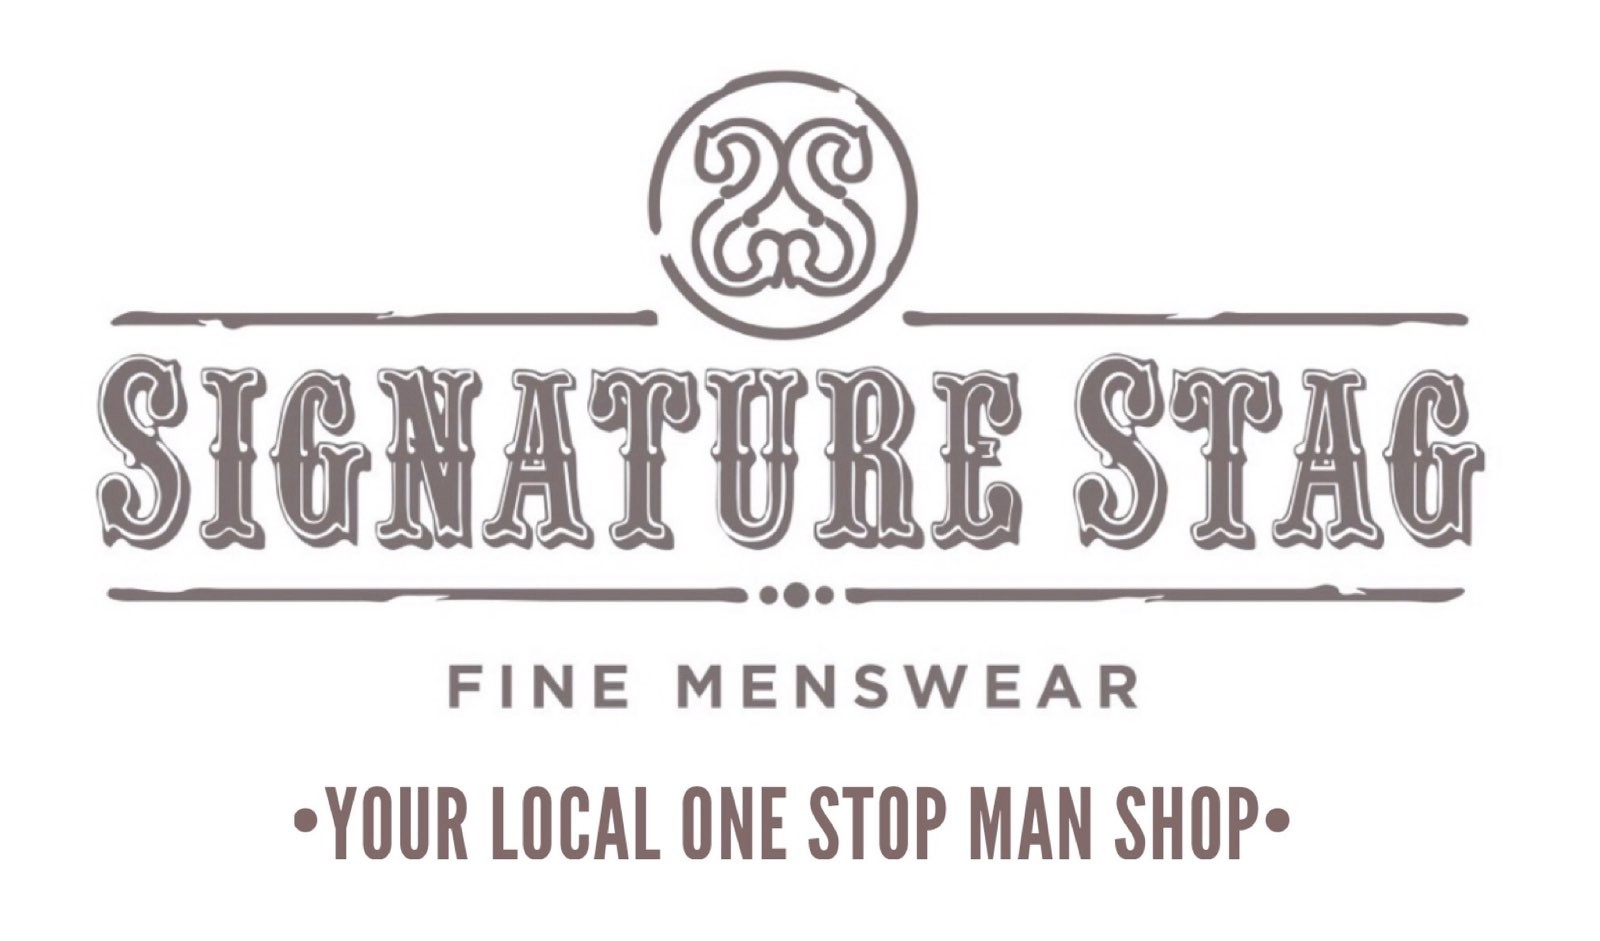 Mens' Wear Jackets and Suits and Signature Stag